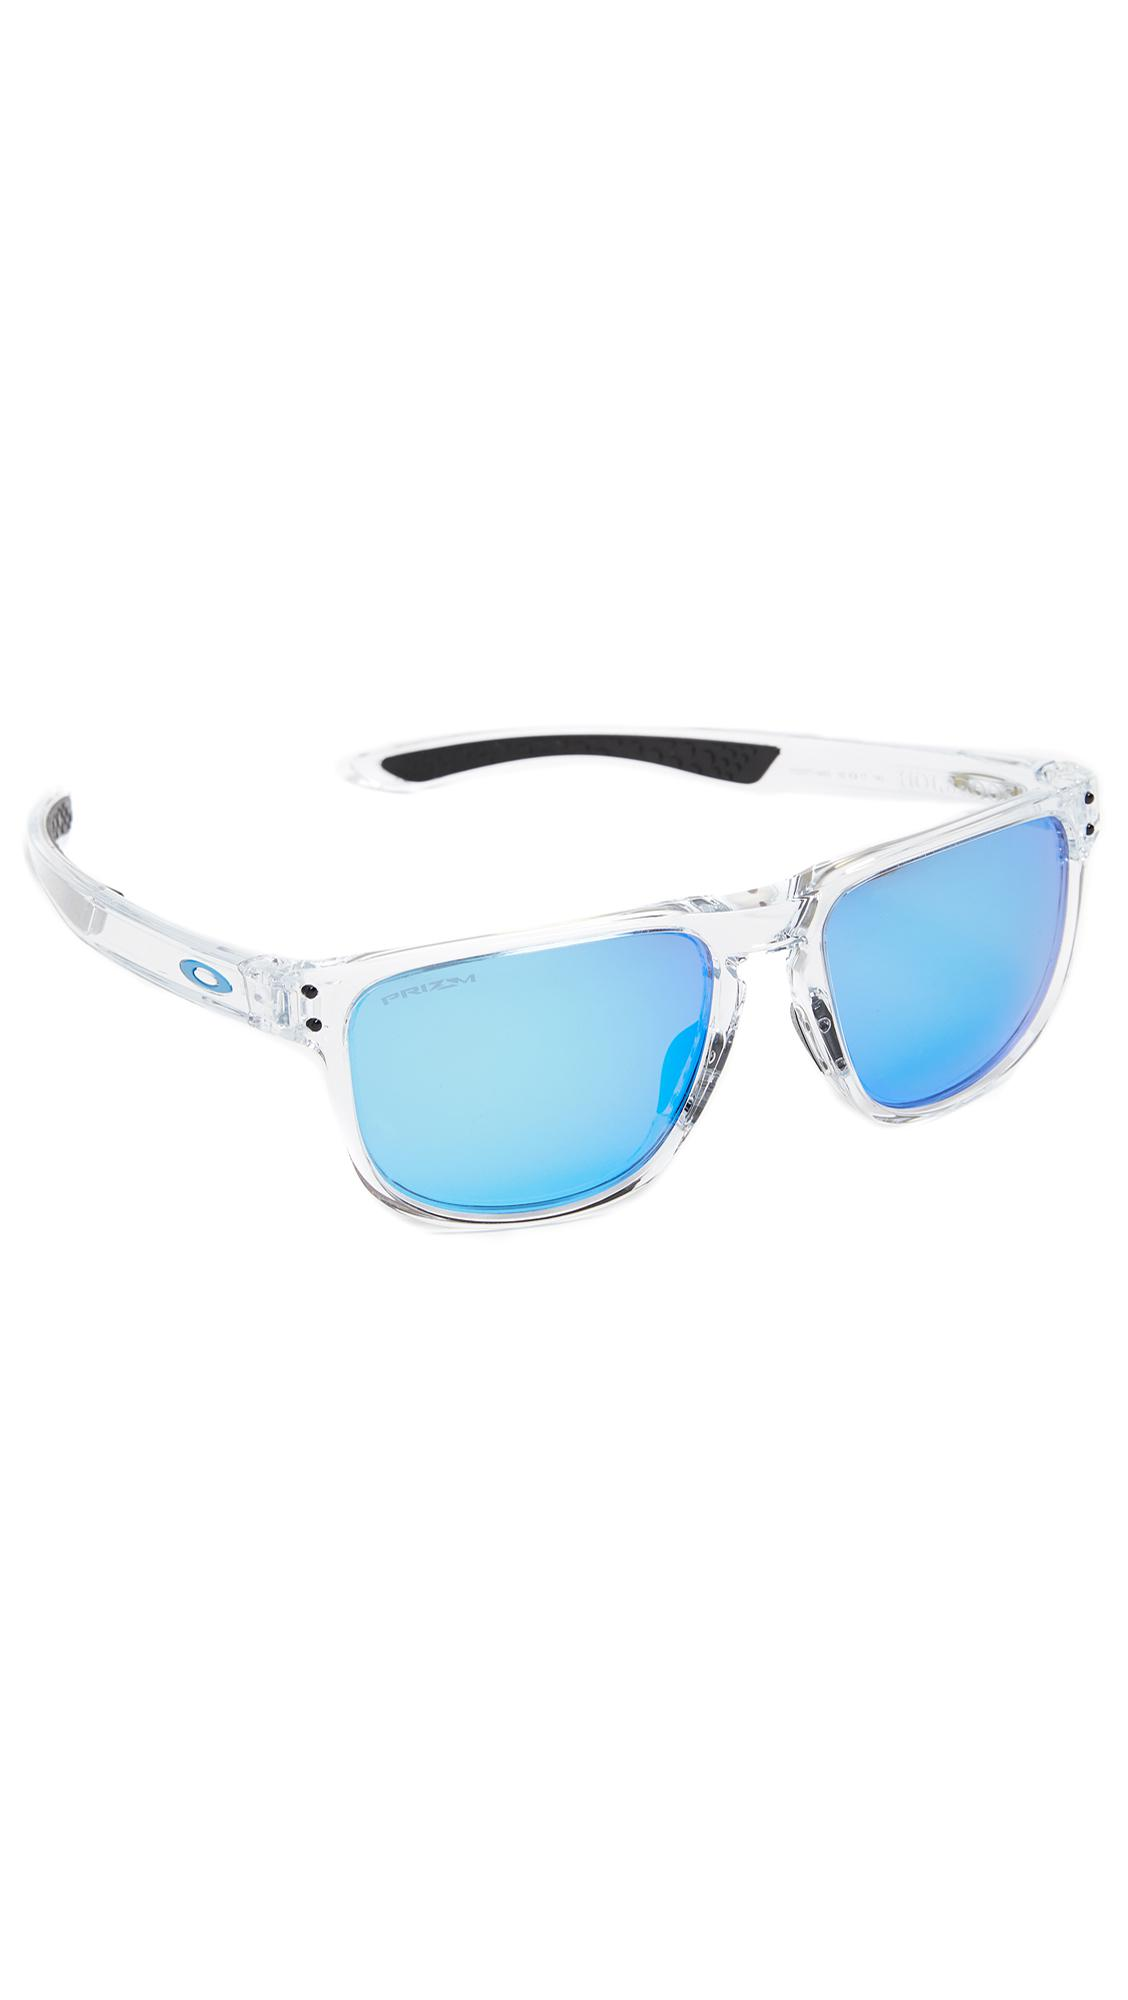 492b20a2985a2 Oakley Holbrook Prizm Sunglasses in Blue for Men - Lyst